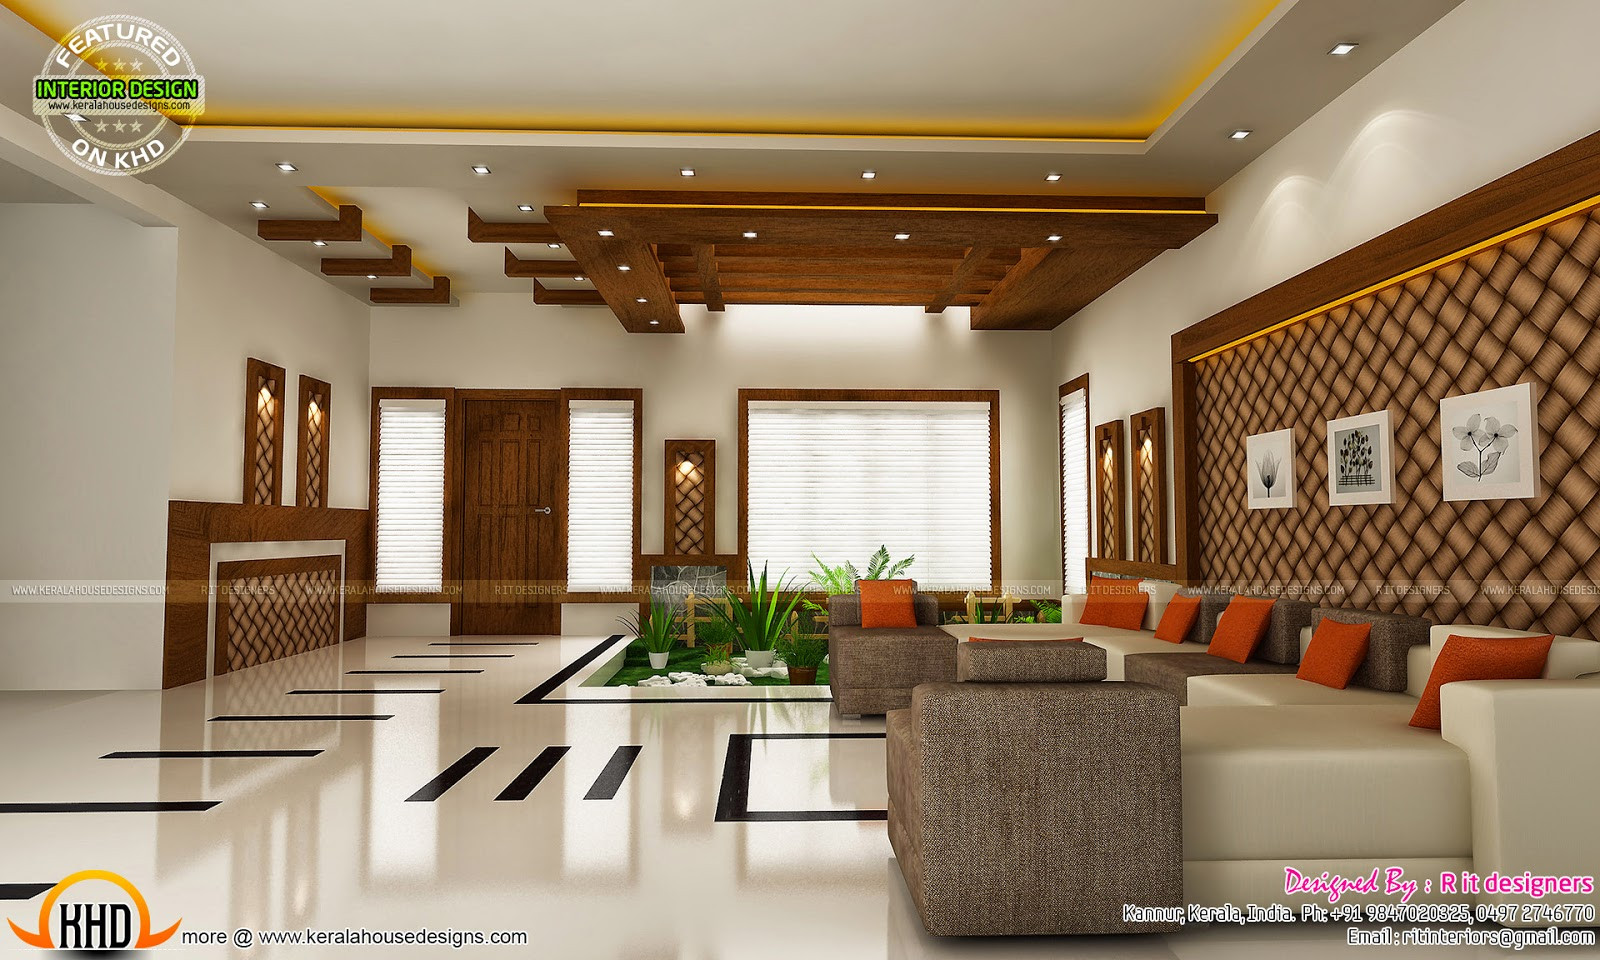 Modern and unique dining kitchen interior kerala home for Interior designs home